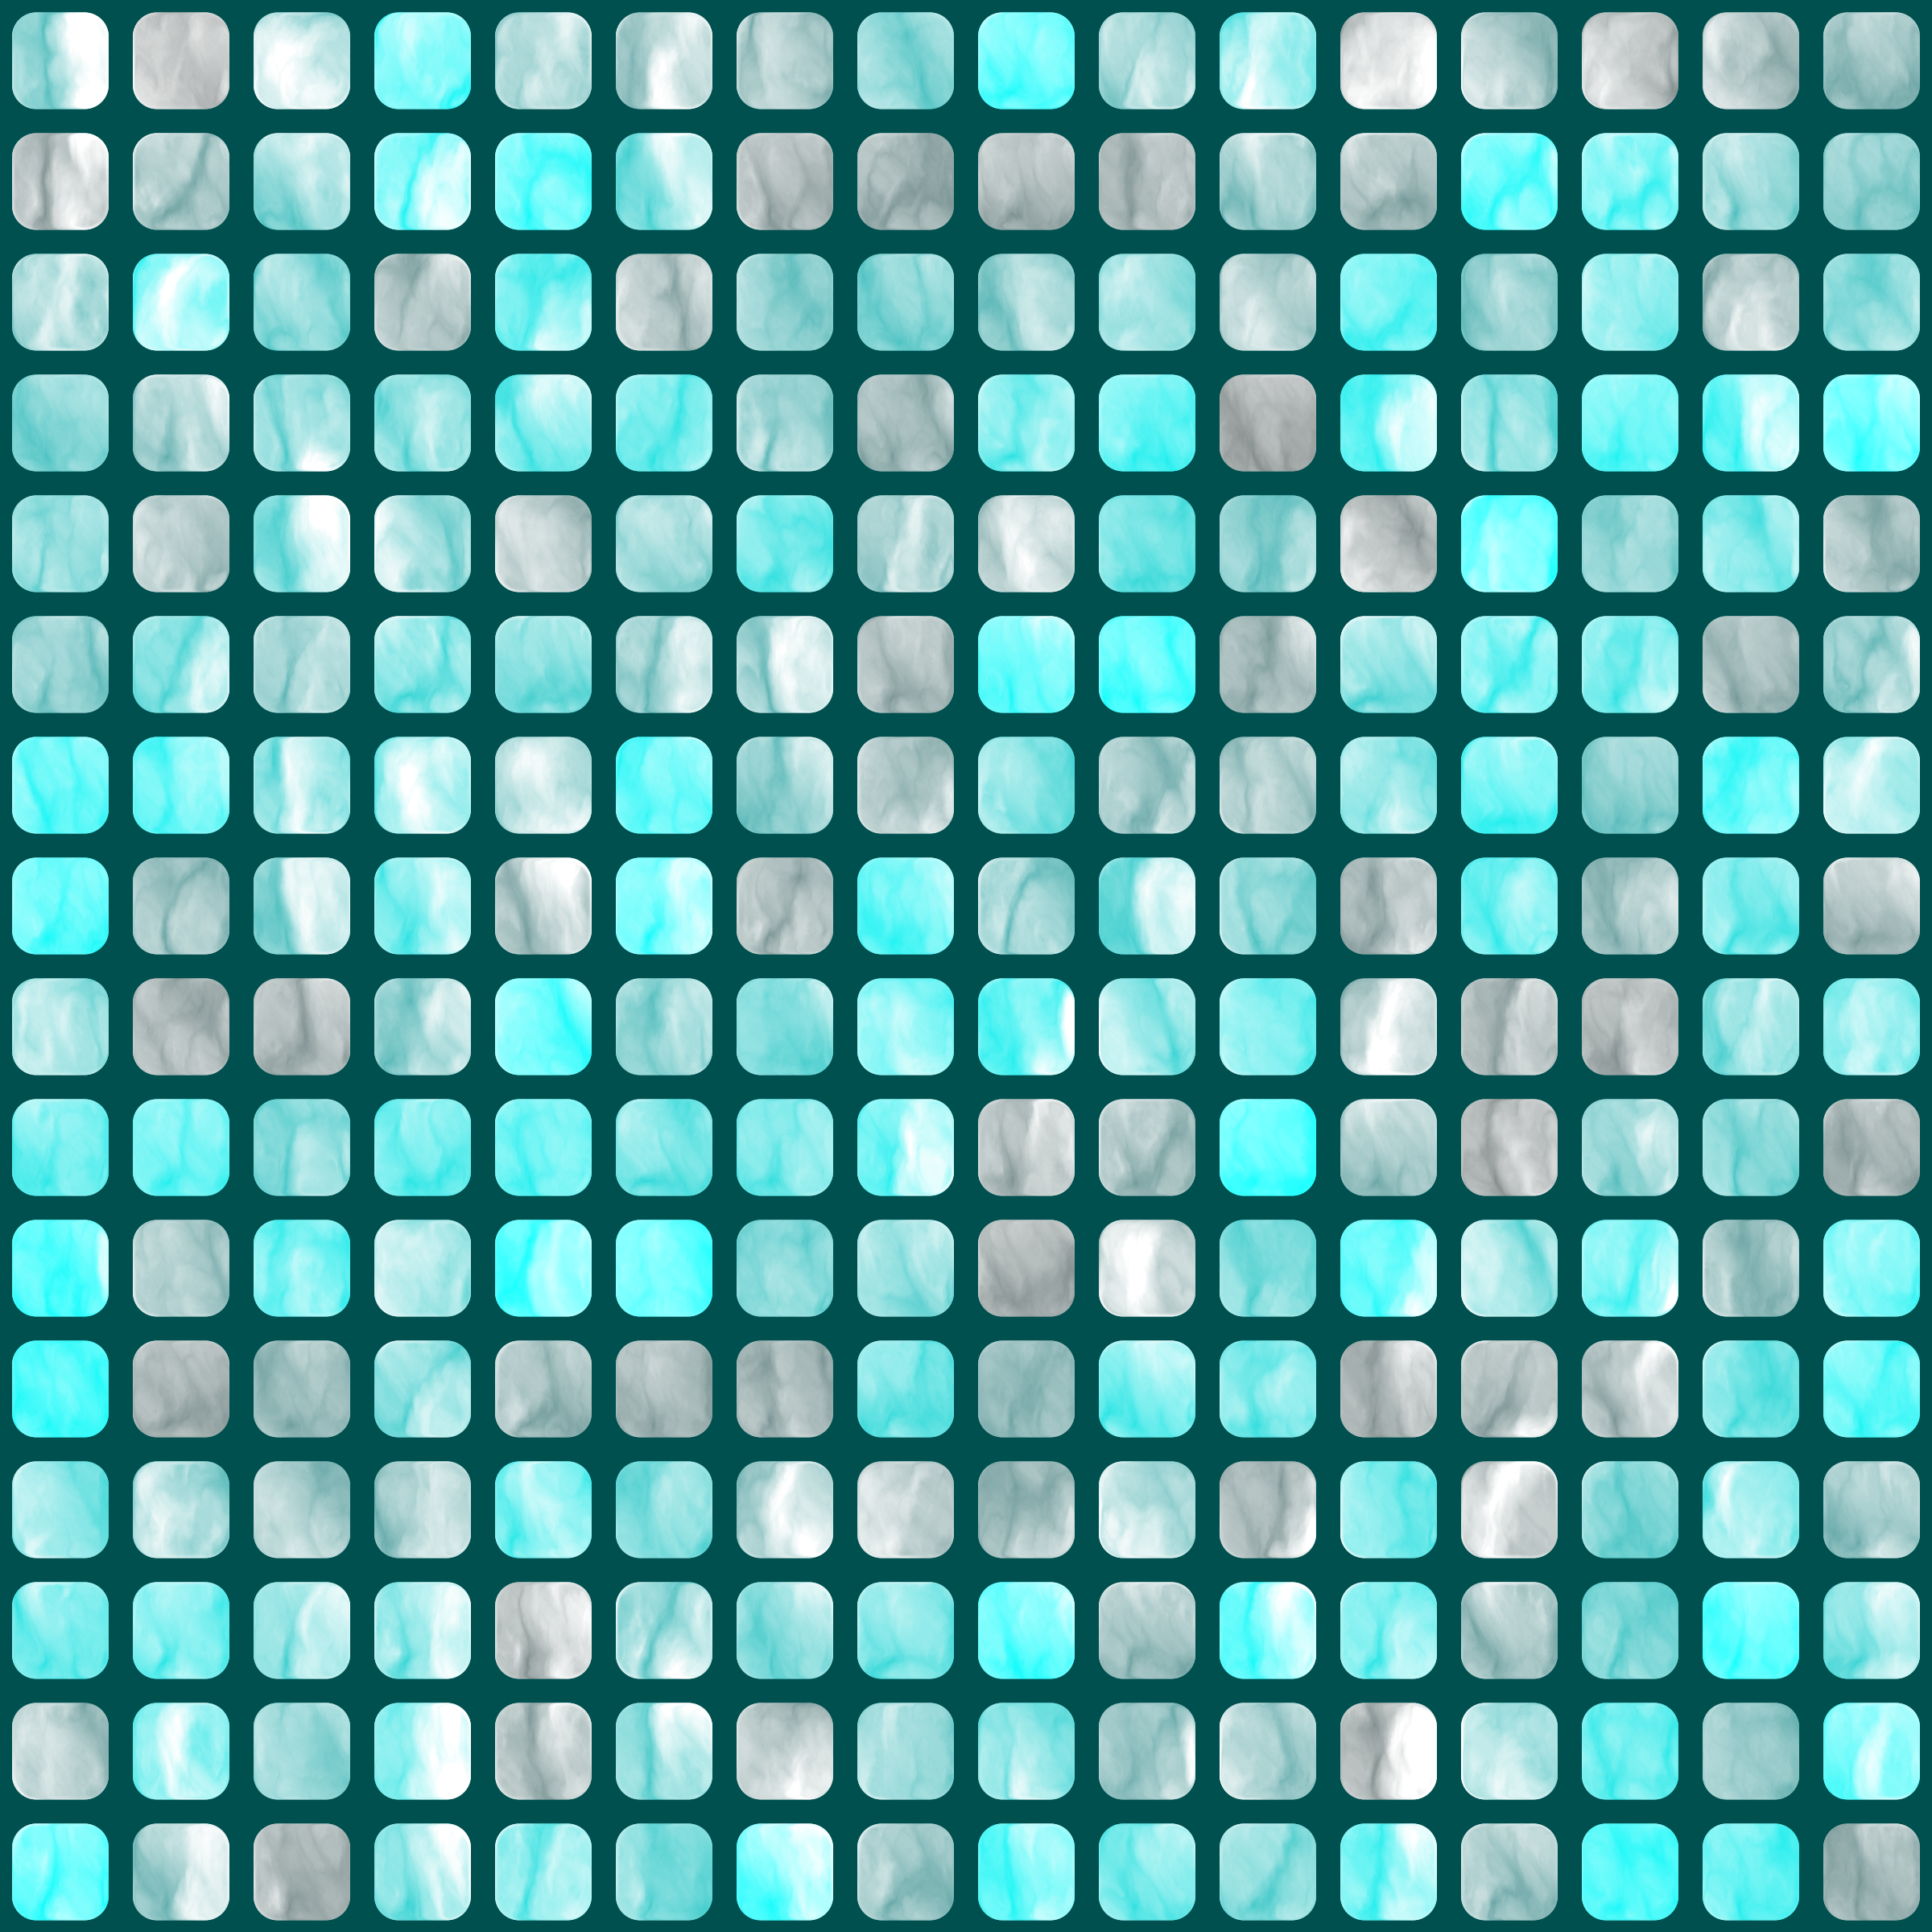 Background pattern 242 (colour 5) by Firkin